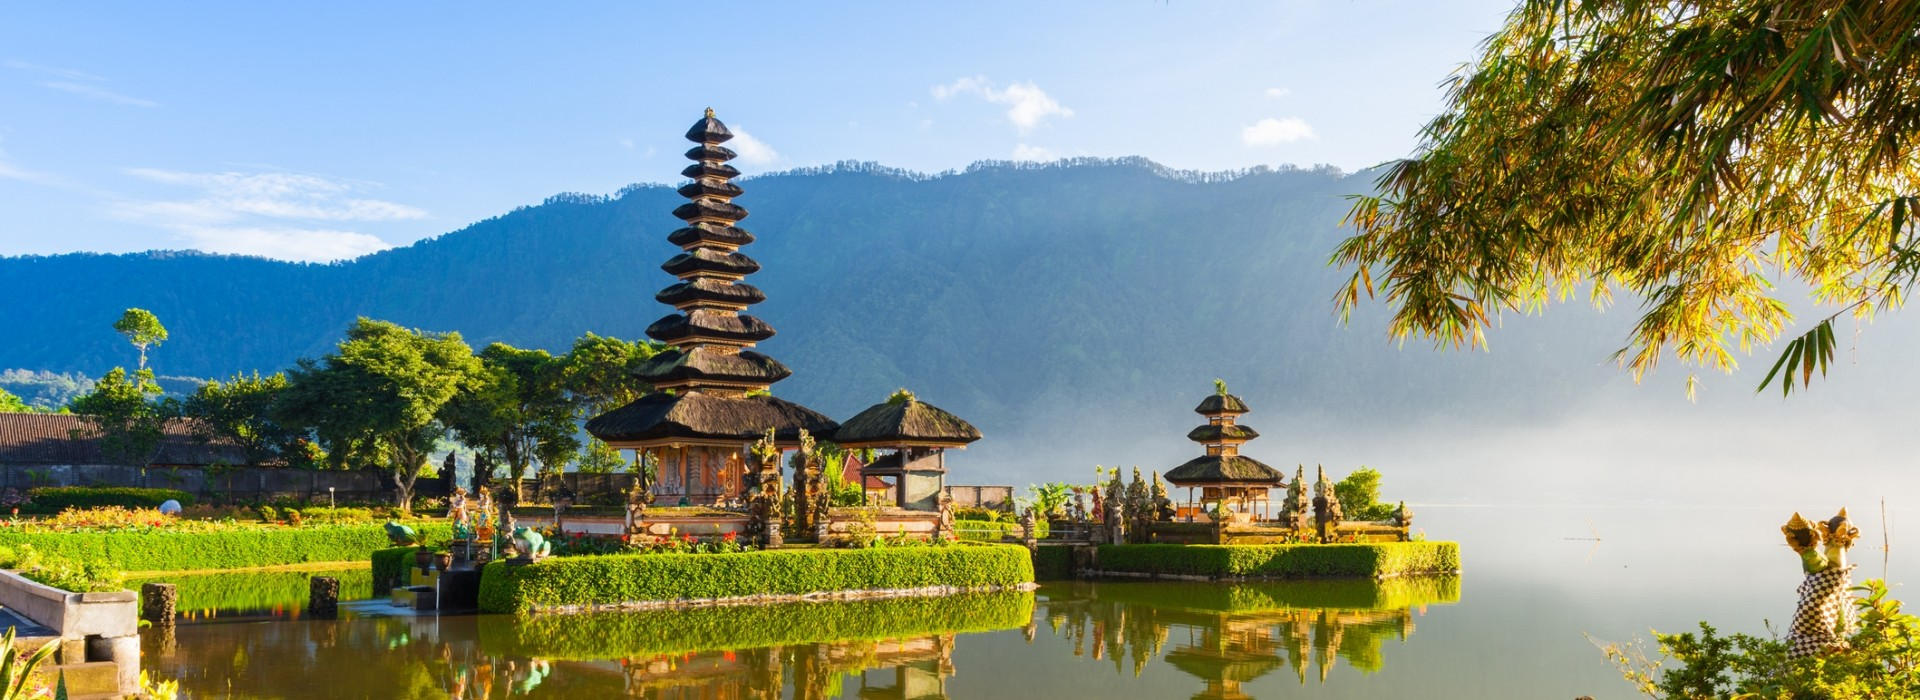 Indonesia Tours and Trips to Indonesia